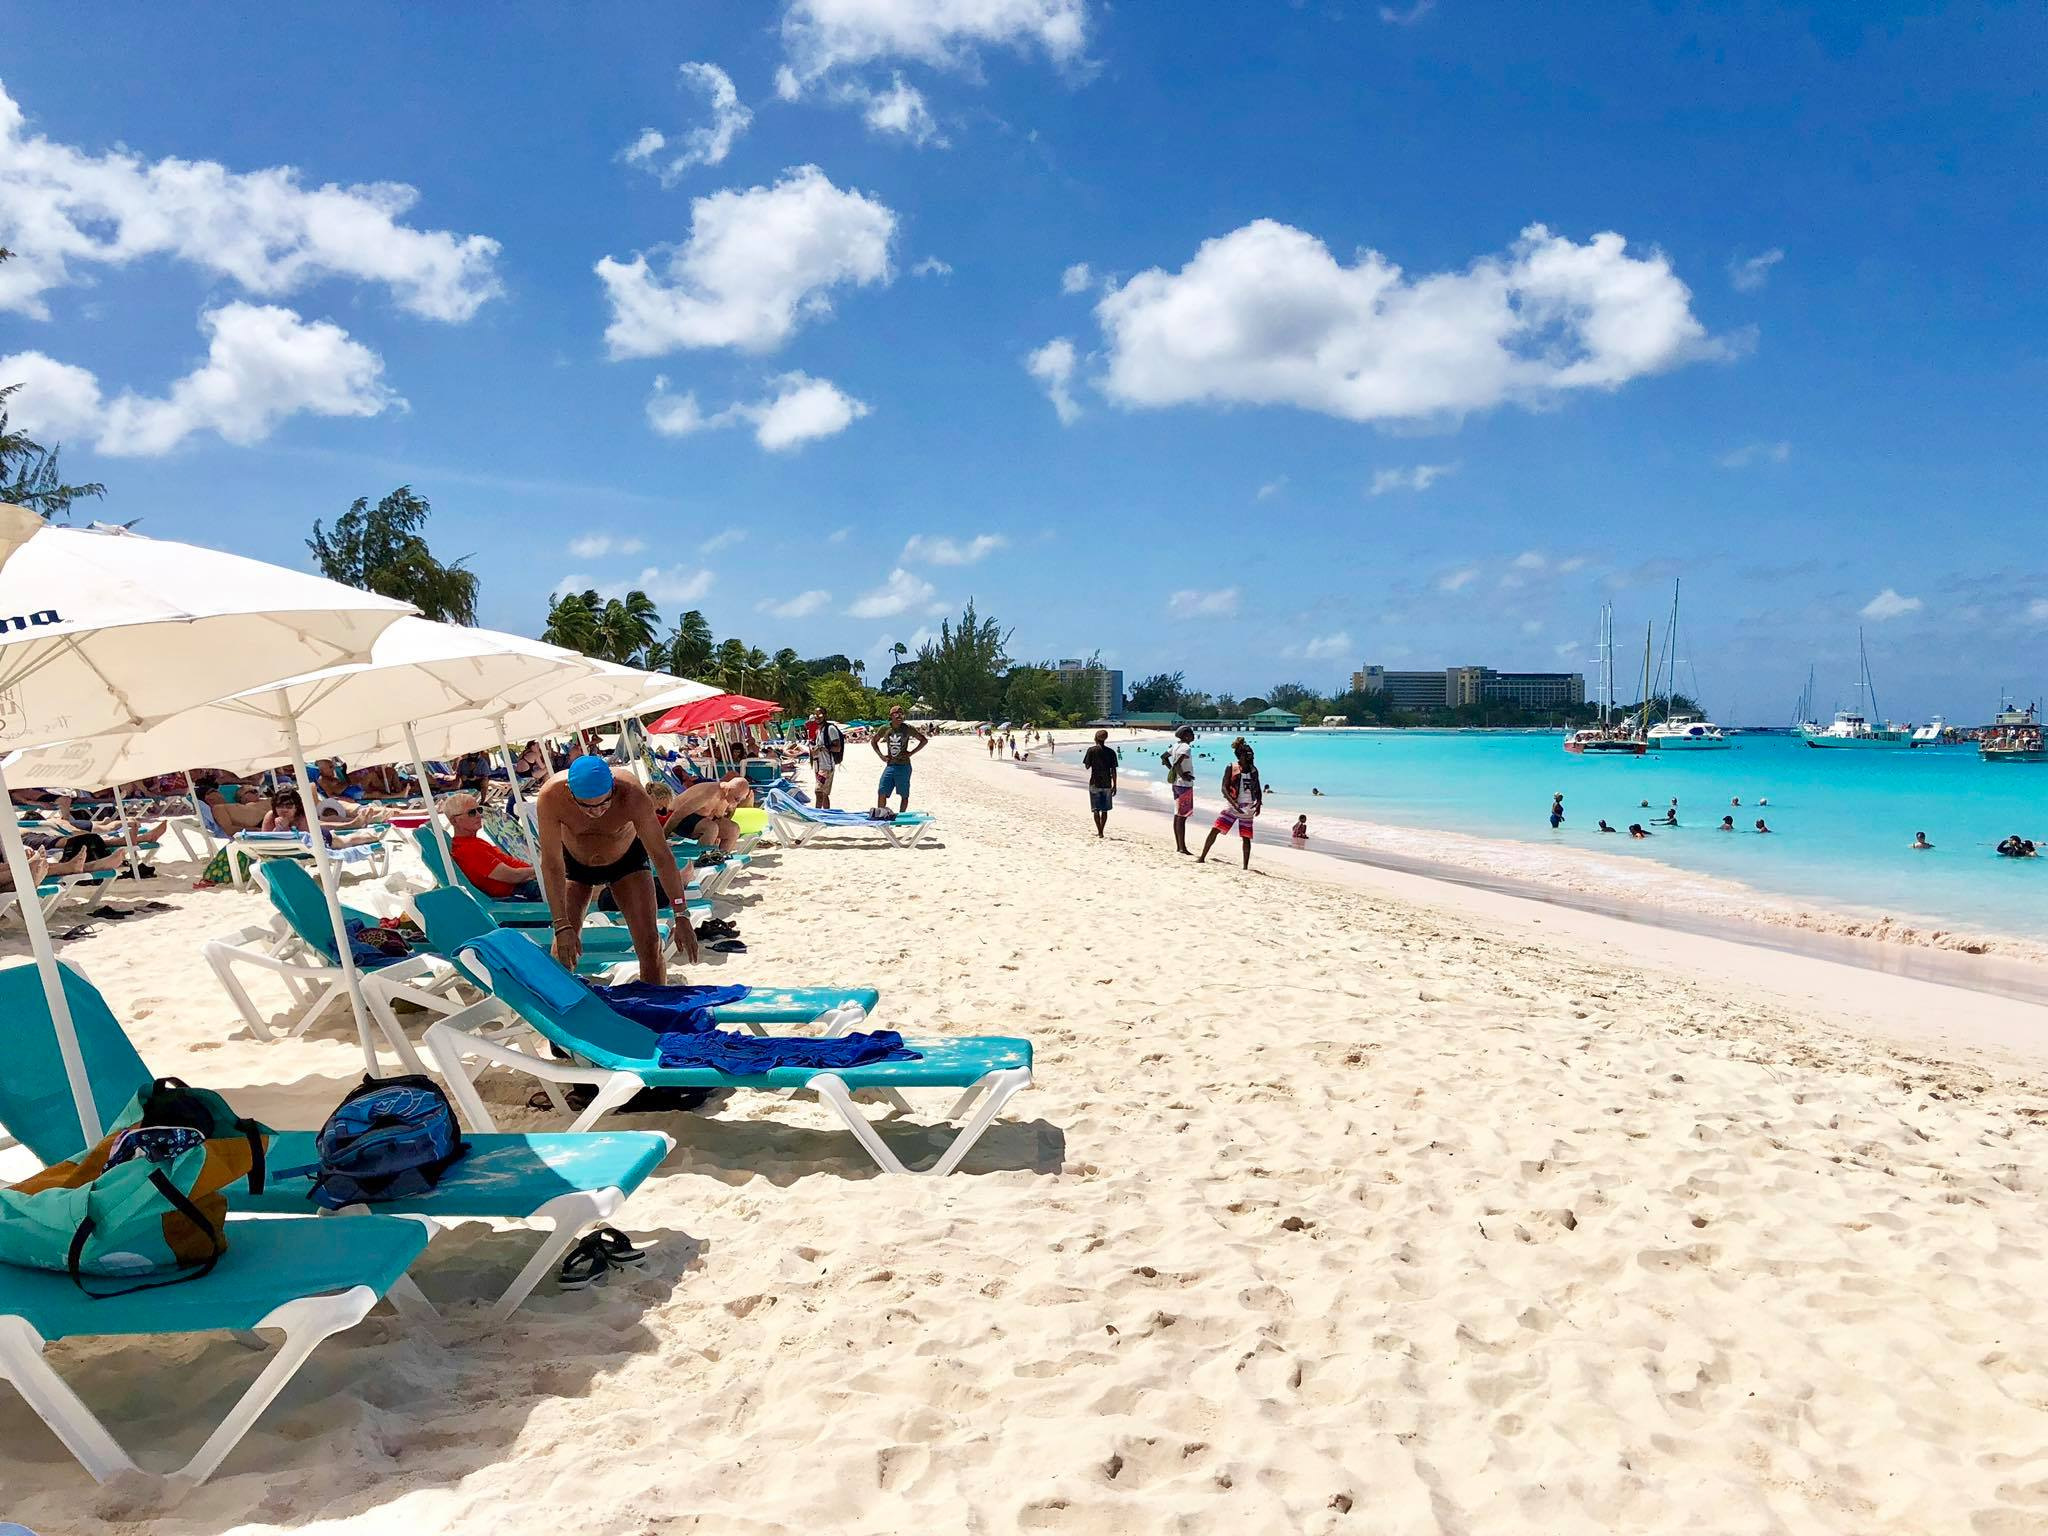 Kach Solo Travels in 2019 Arrived in my country 124th - BARBADOS.jpg